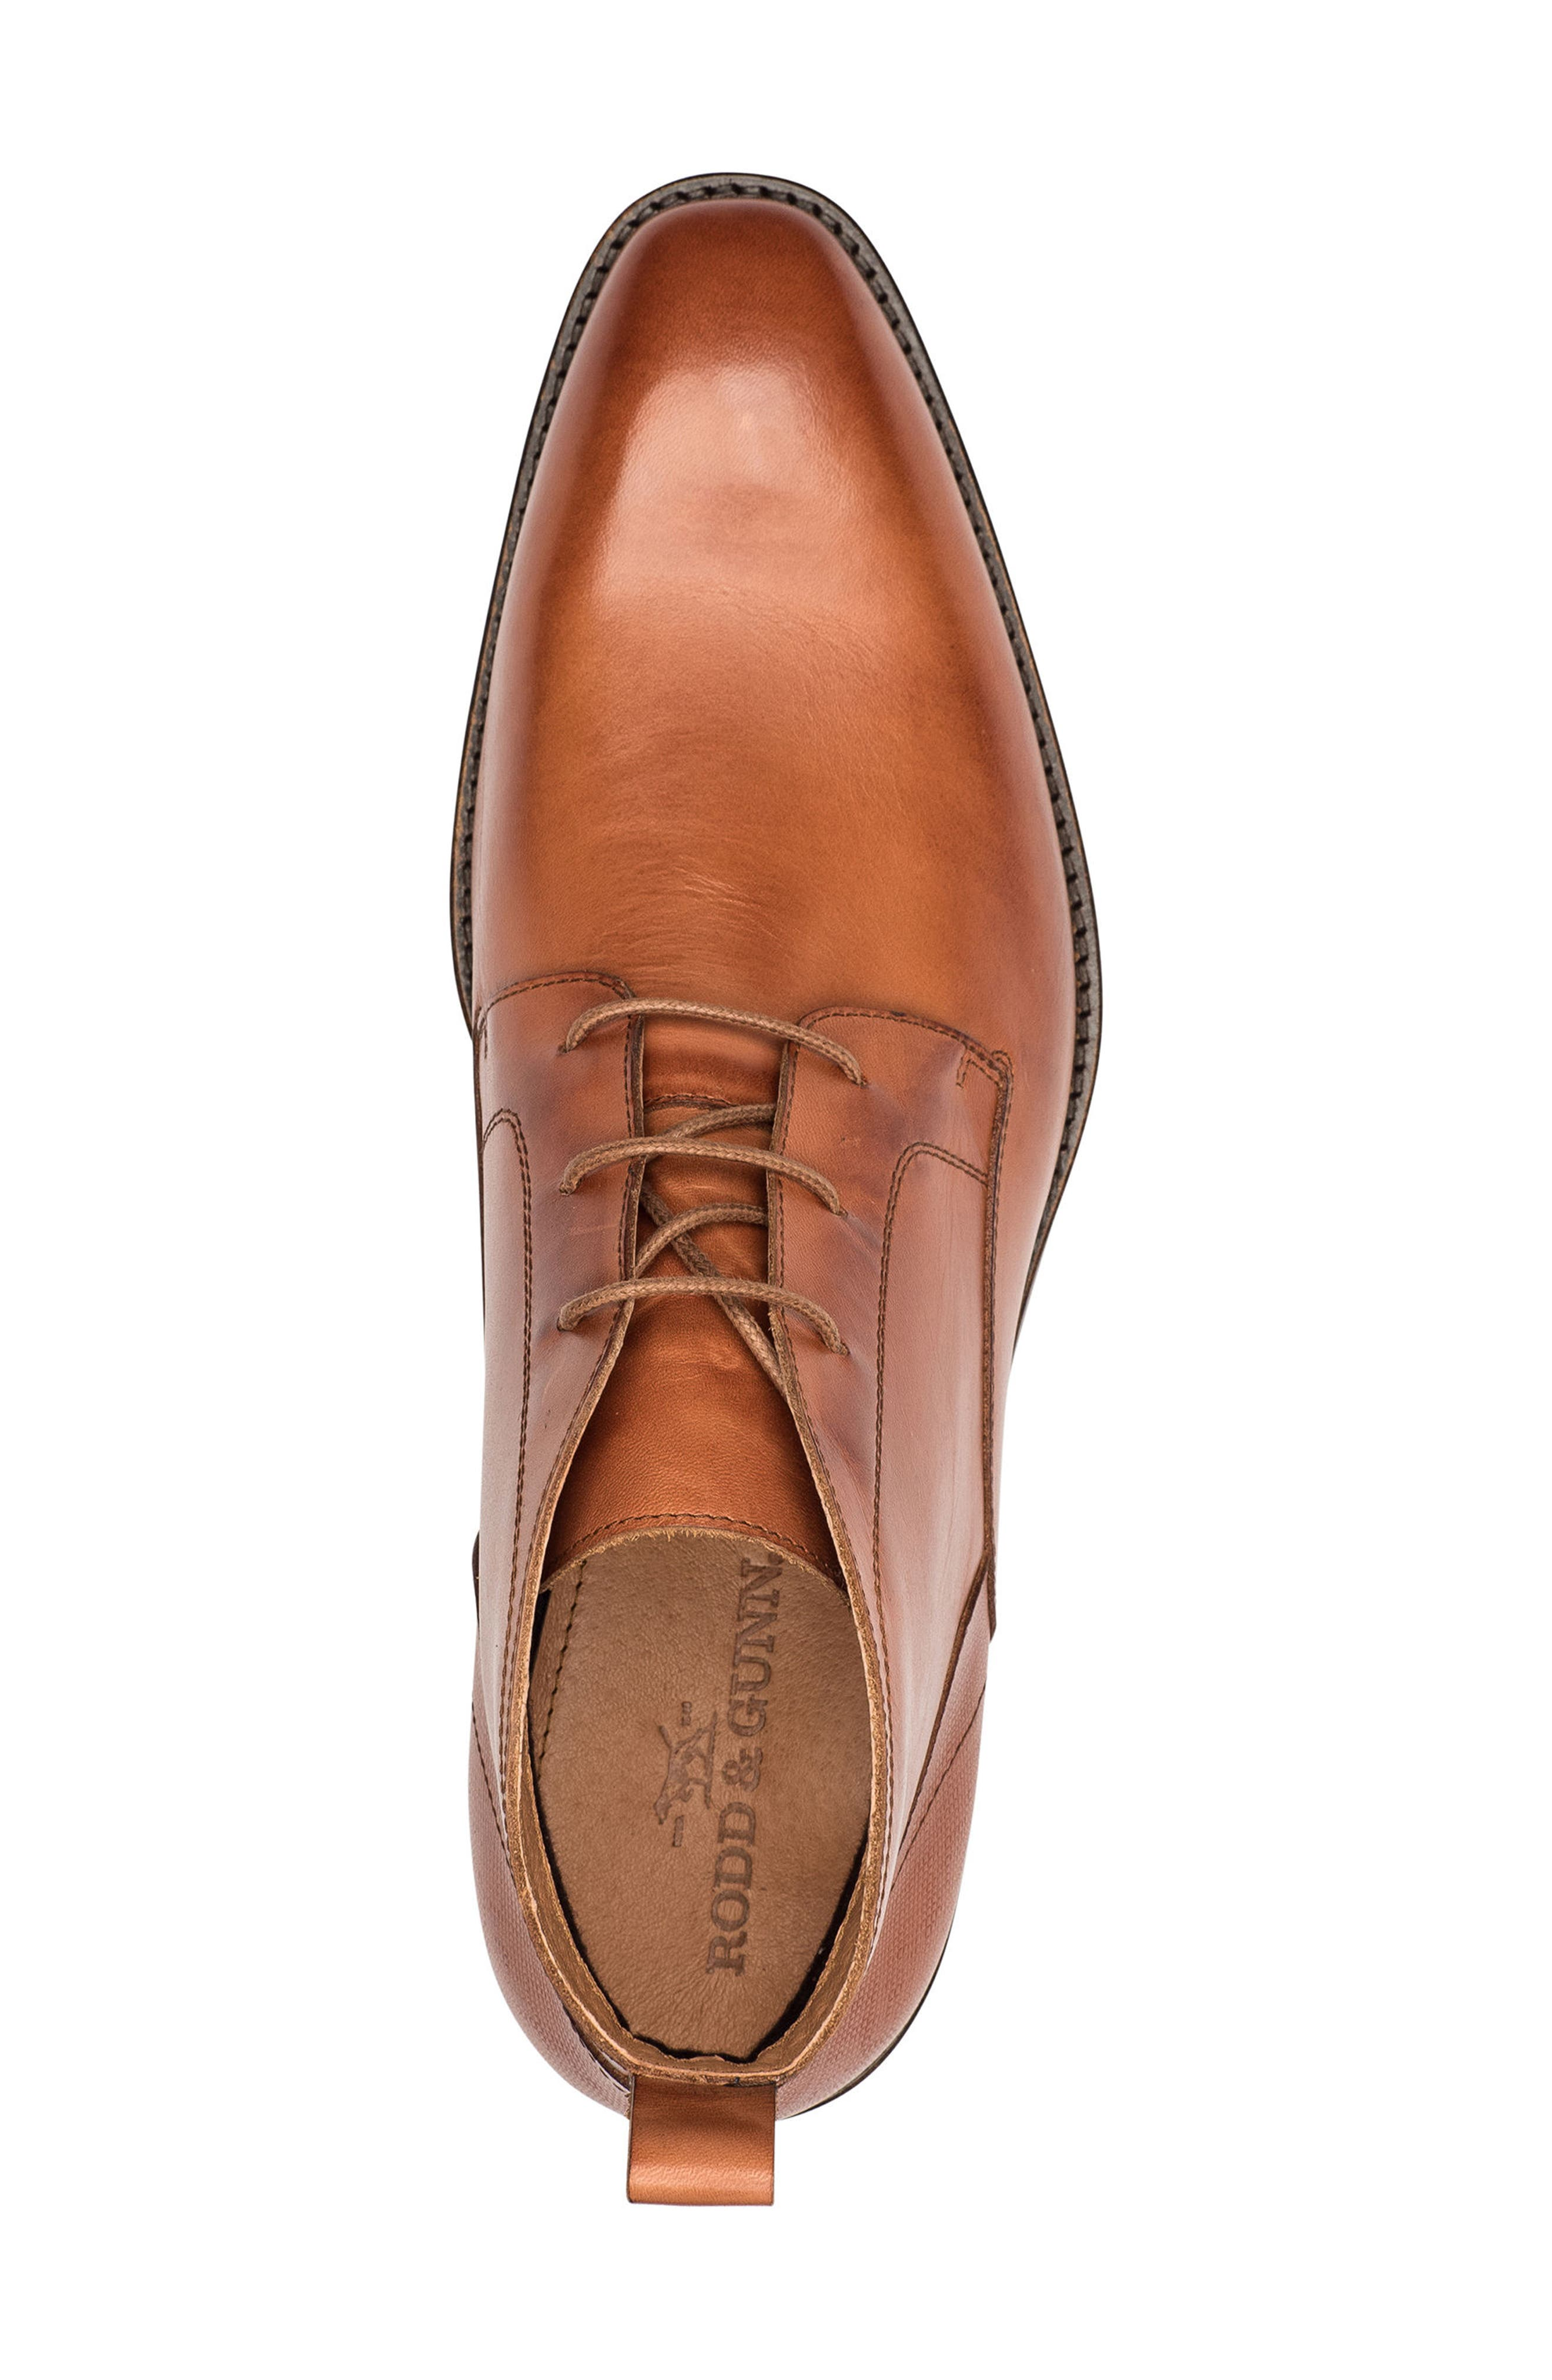 Wellington St. Chukka Boot,                             Alternate thumbnail 4, color,                             TAN